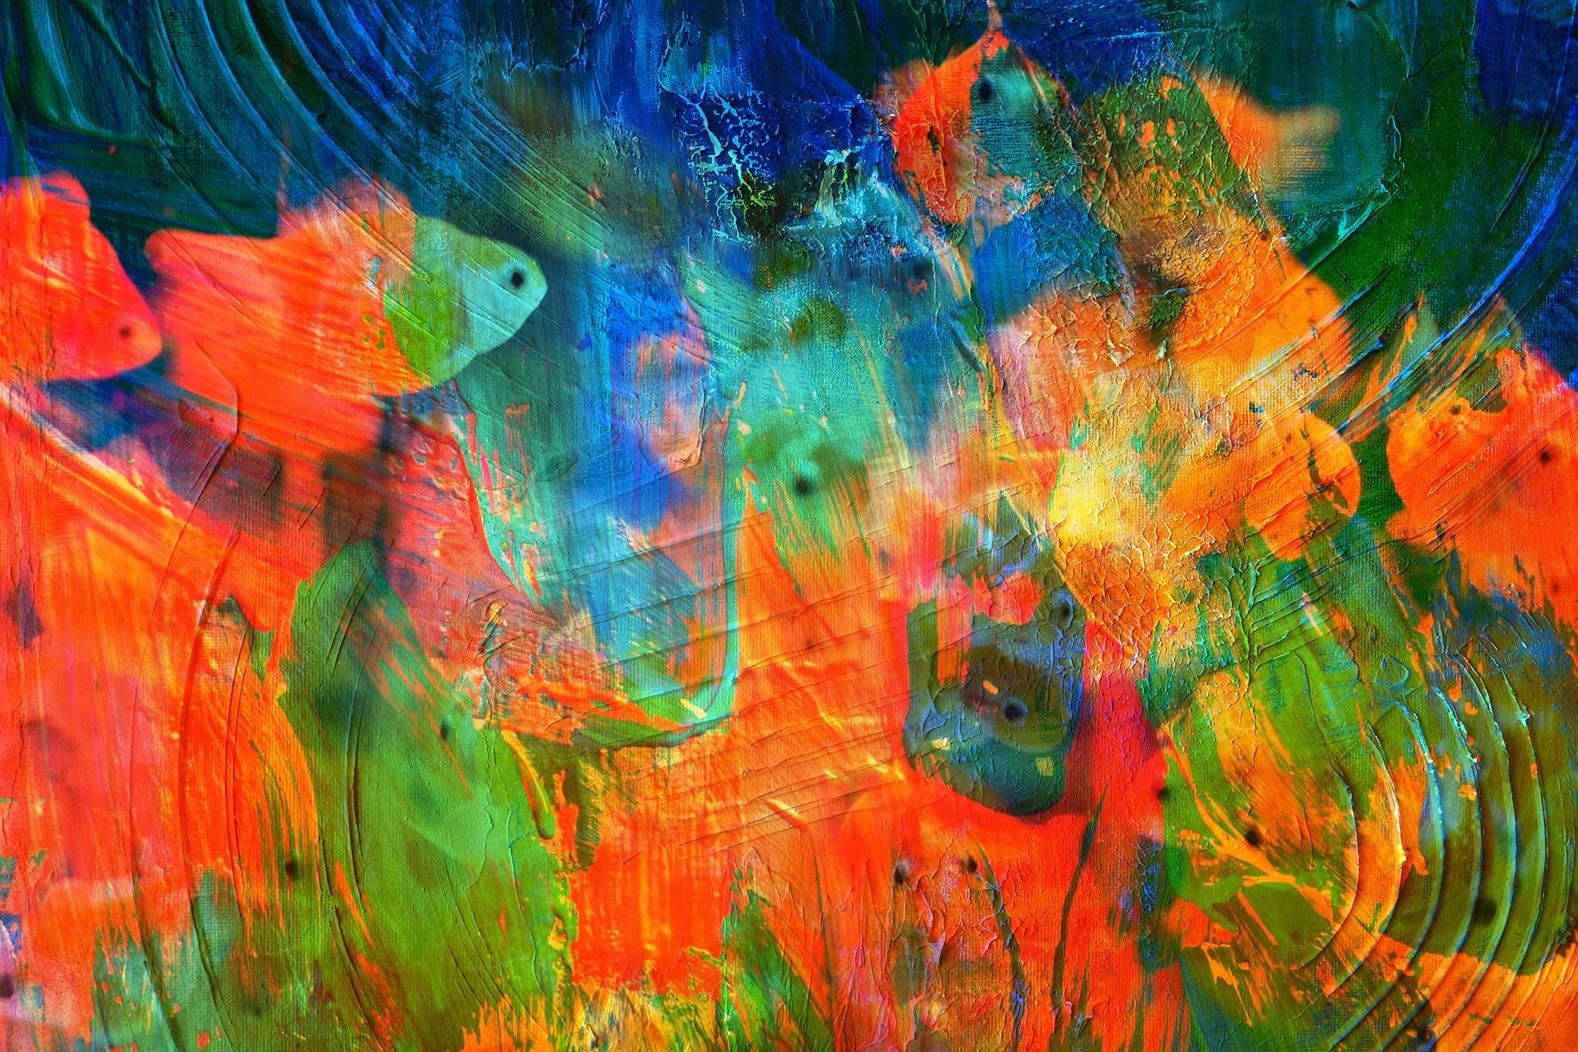 Abstract Orange & Blue Fish